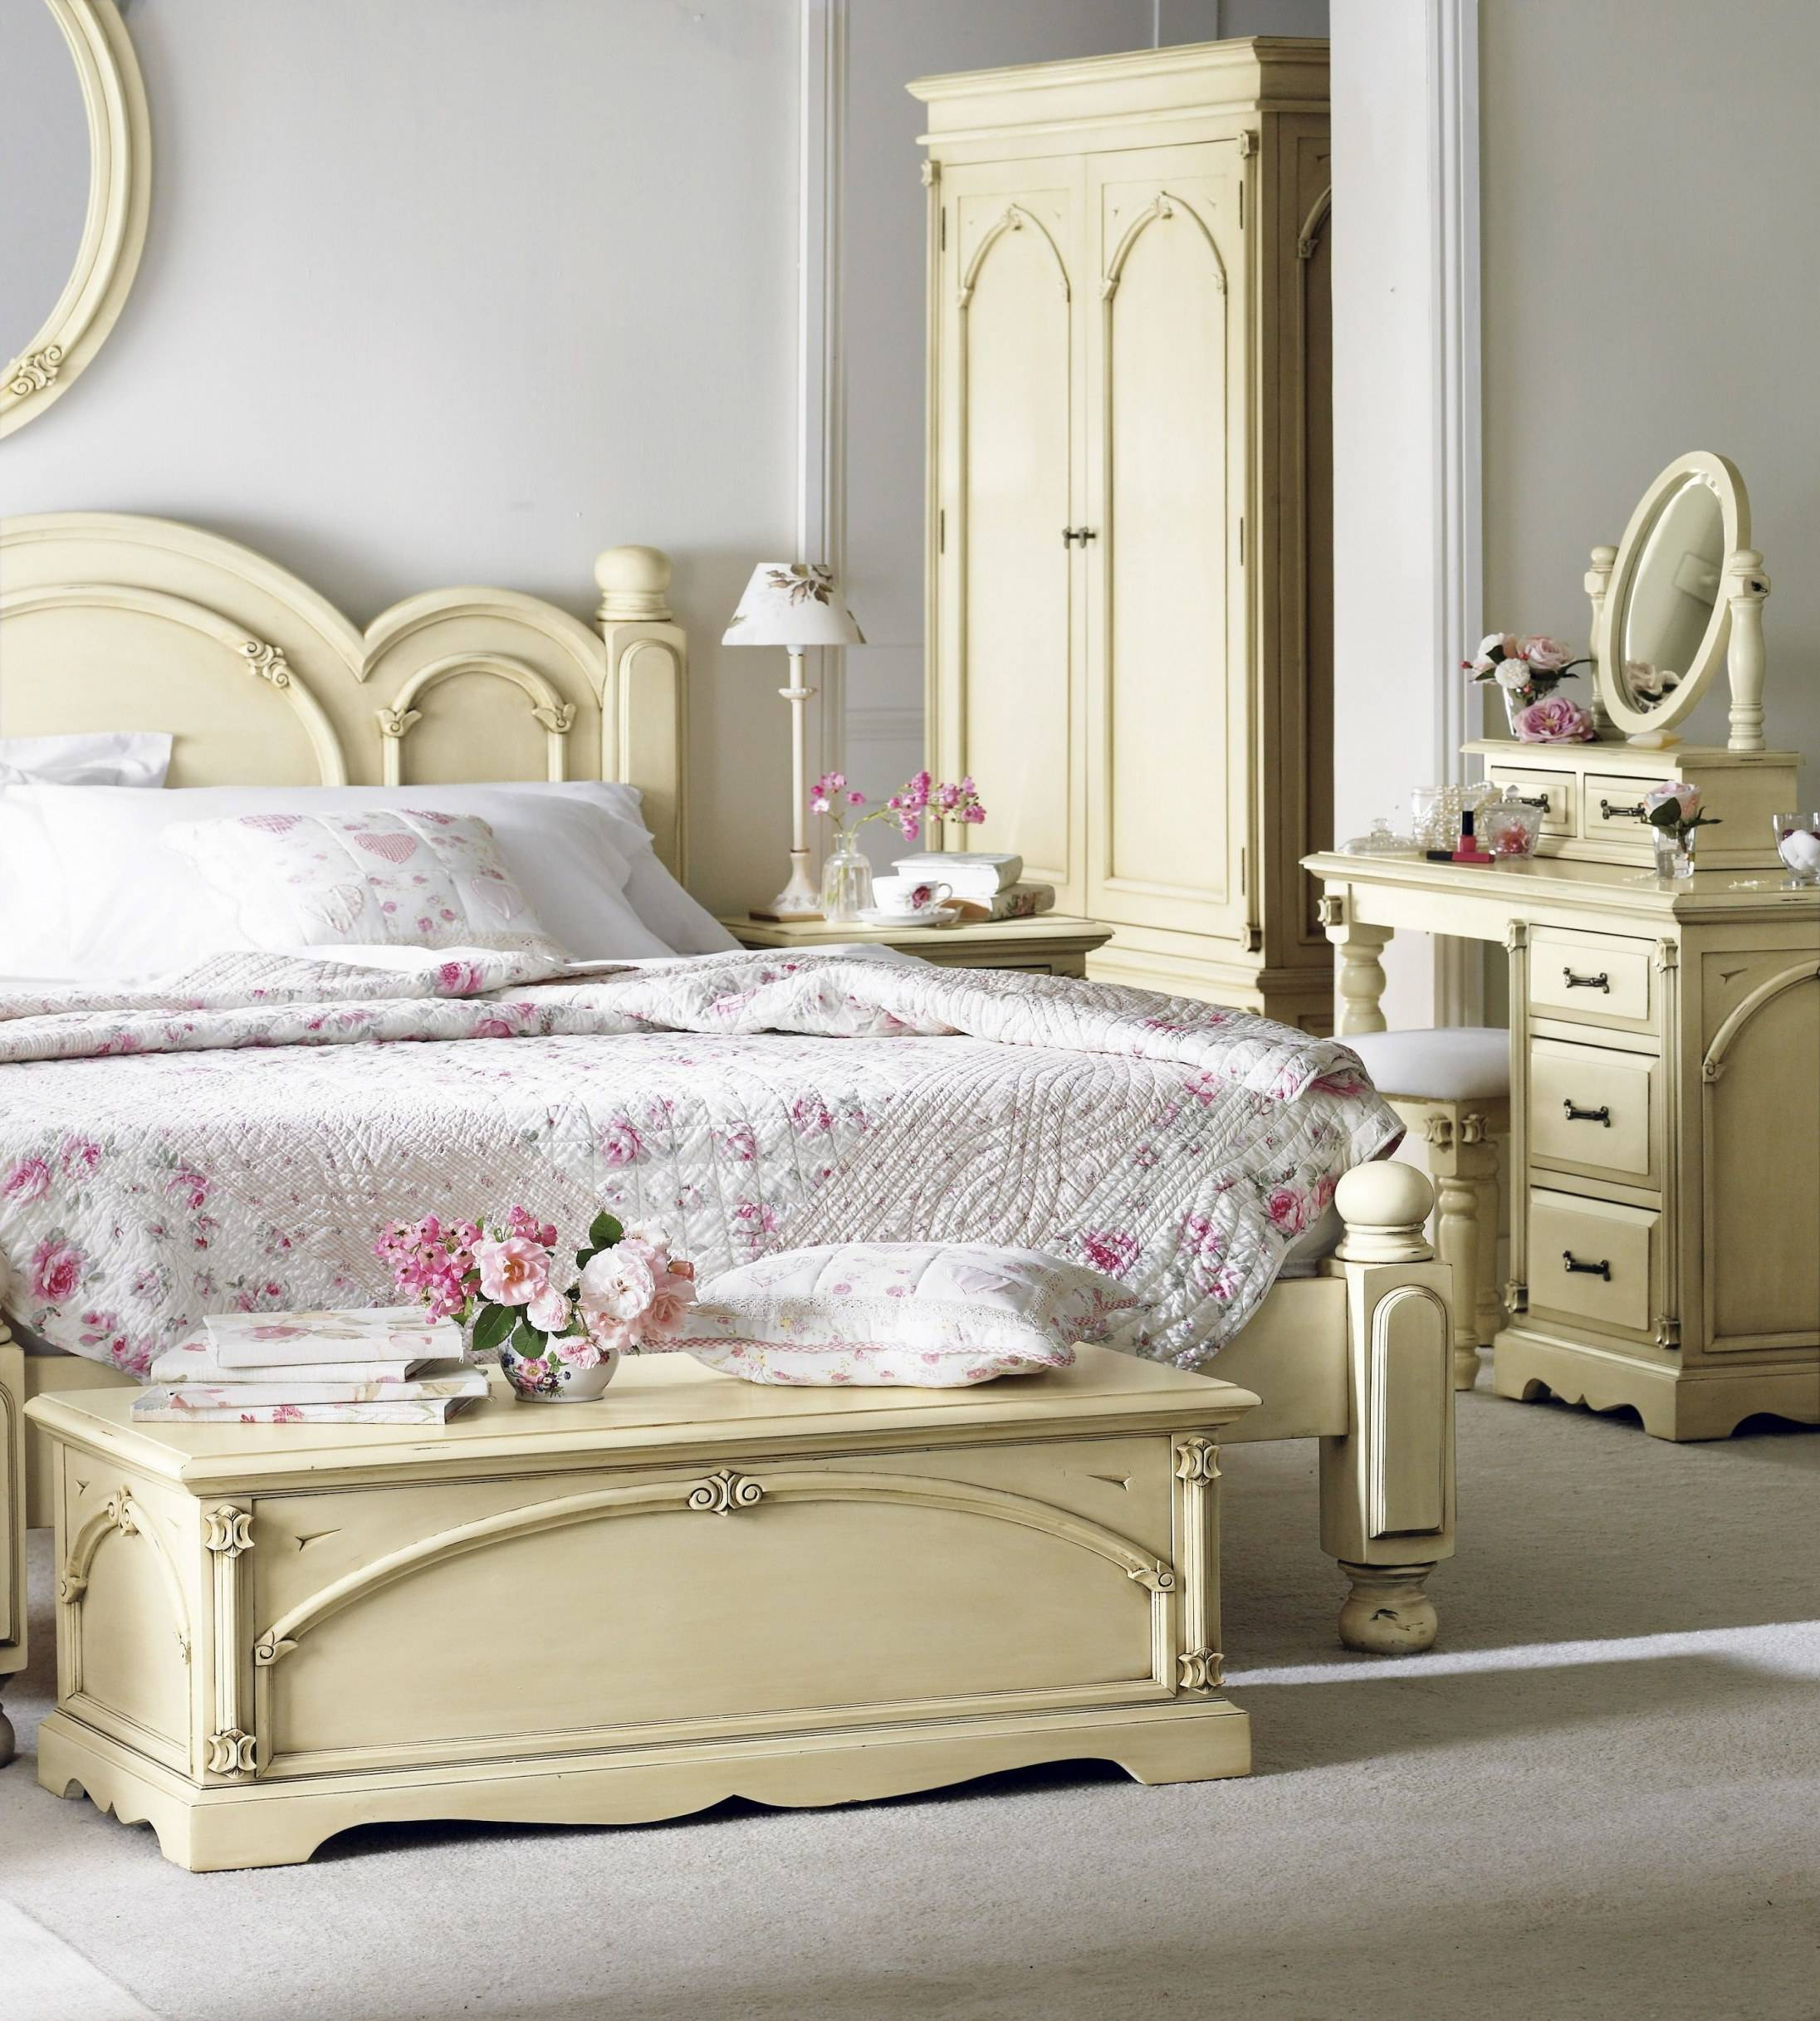 teen girls bedroom ideas bedroom cool gray bedroom decor elegant chic 0d plus the of teen girls bedroom ideas